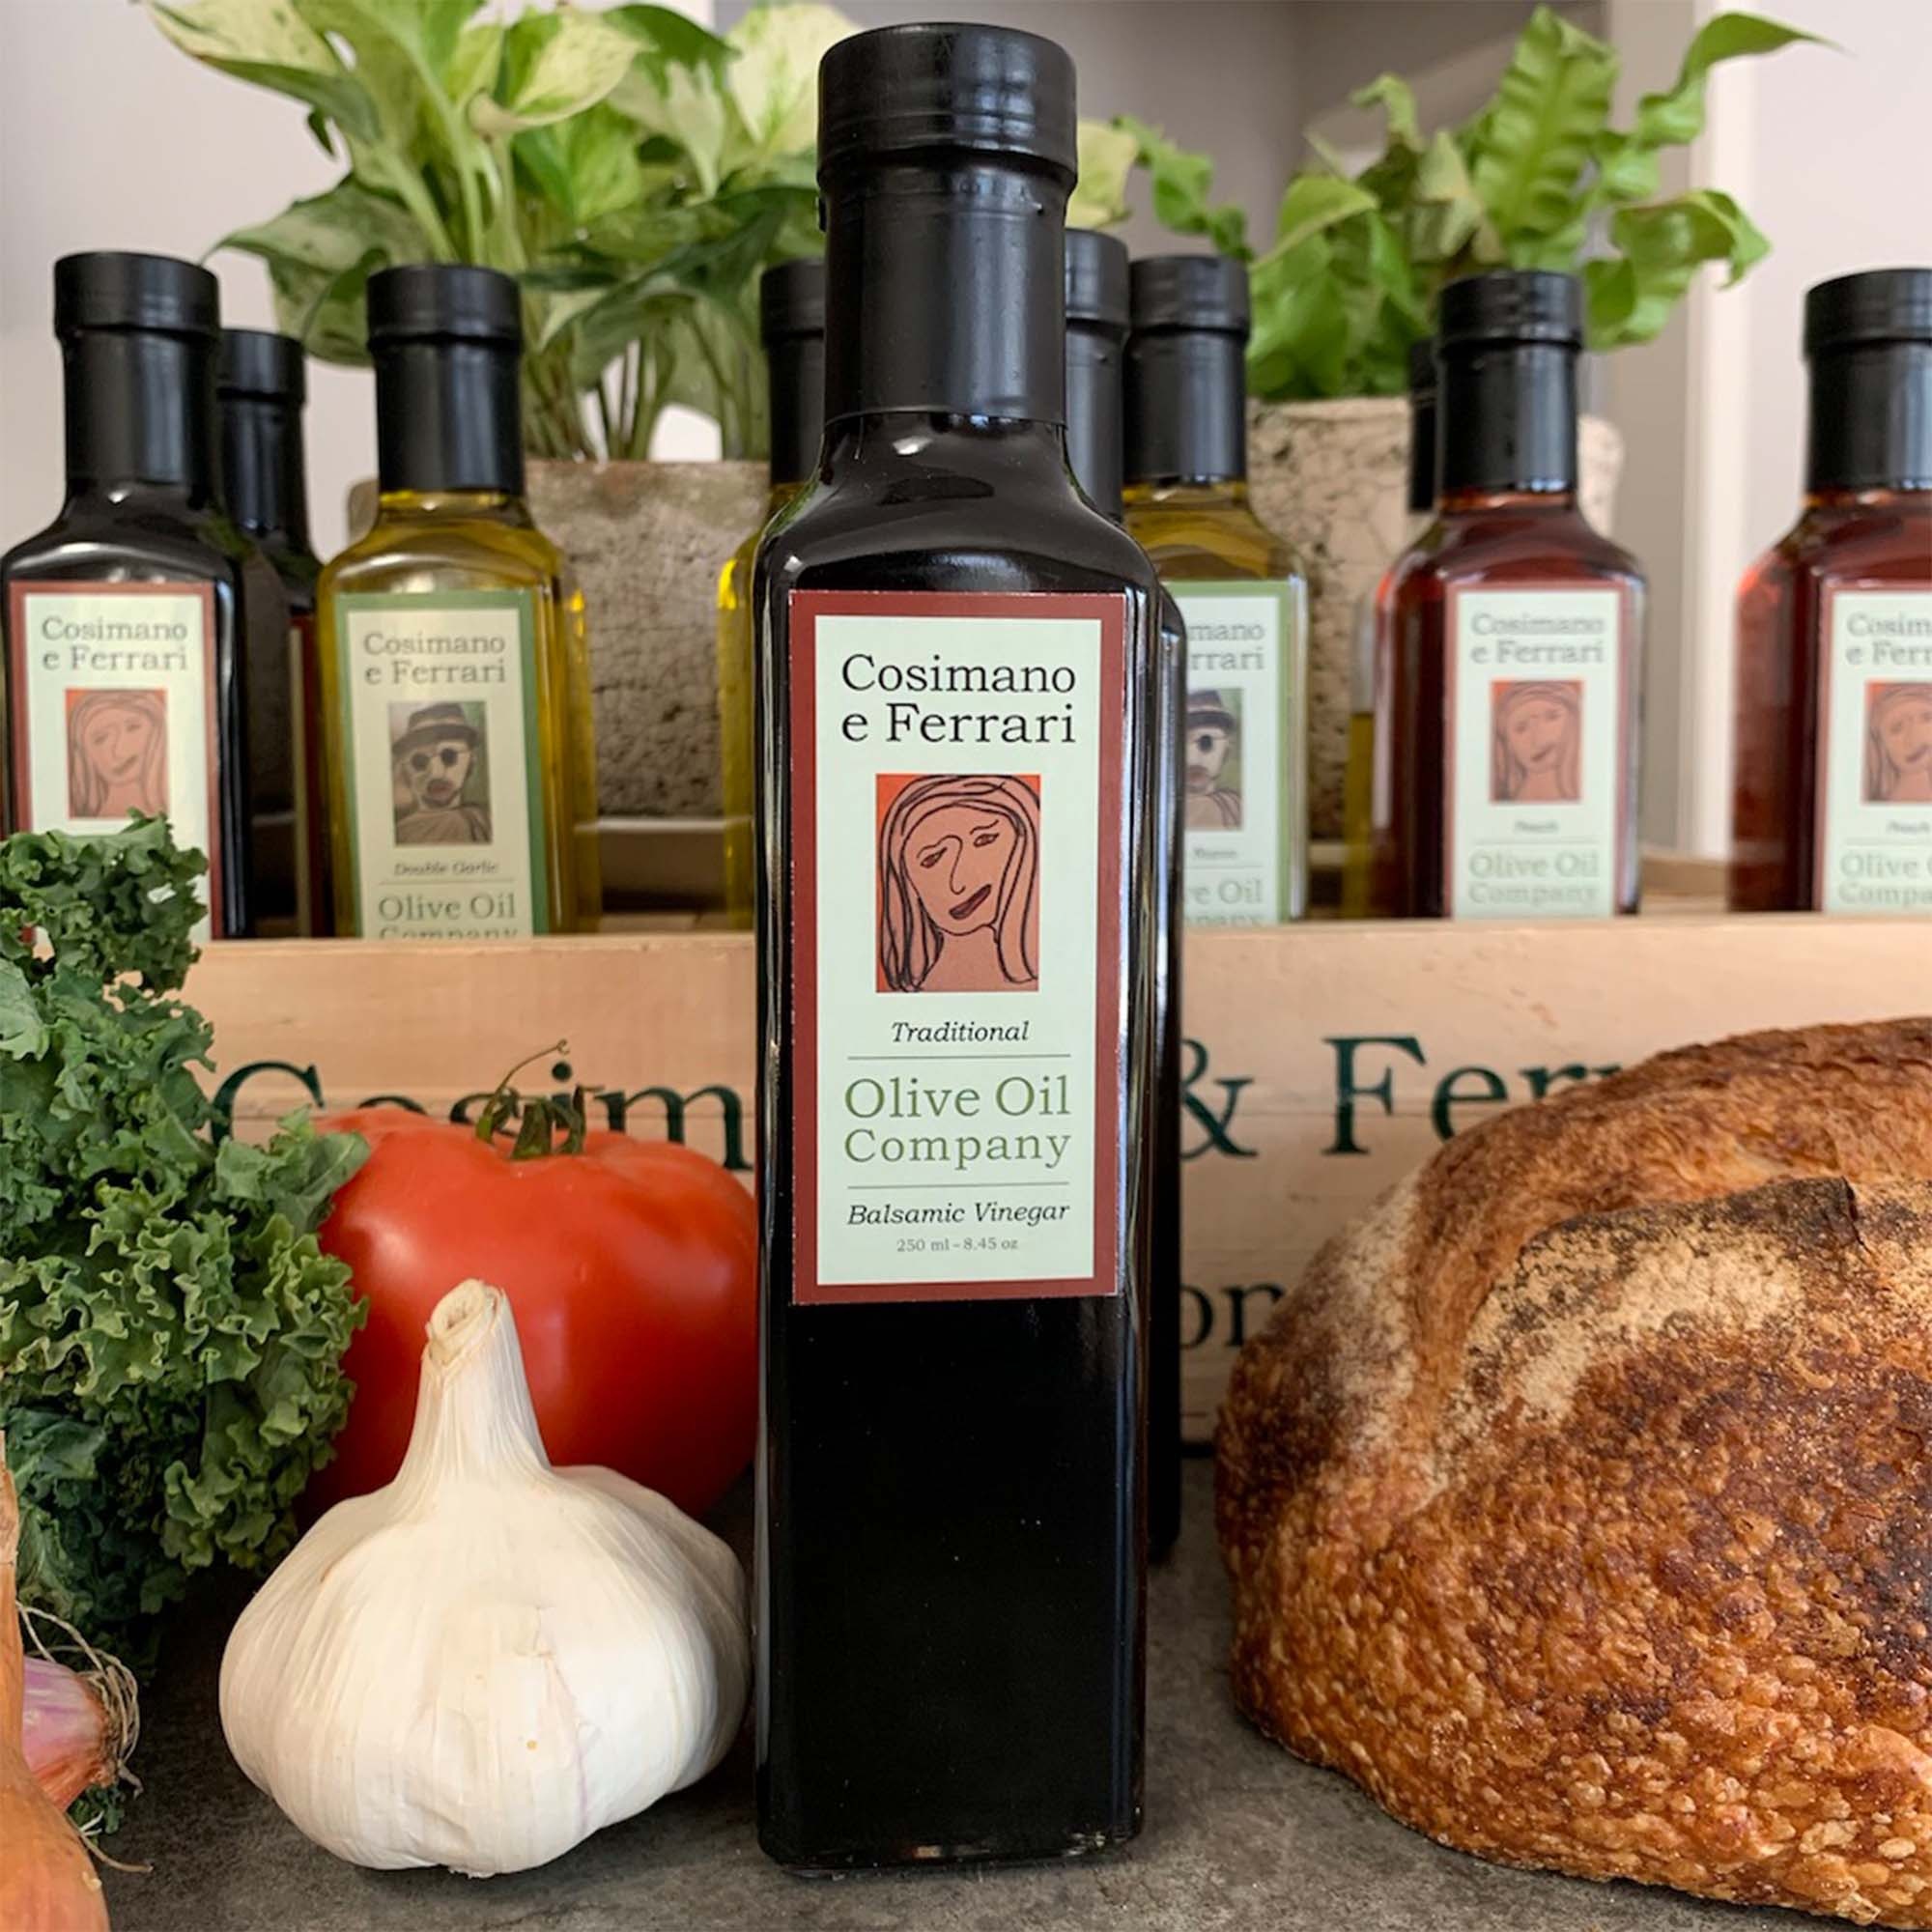 garlic, kale, tomato and sourdough bread surrounding tall bottle of olive oil with graphic of smiling women on front.